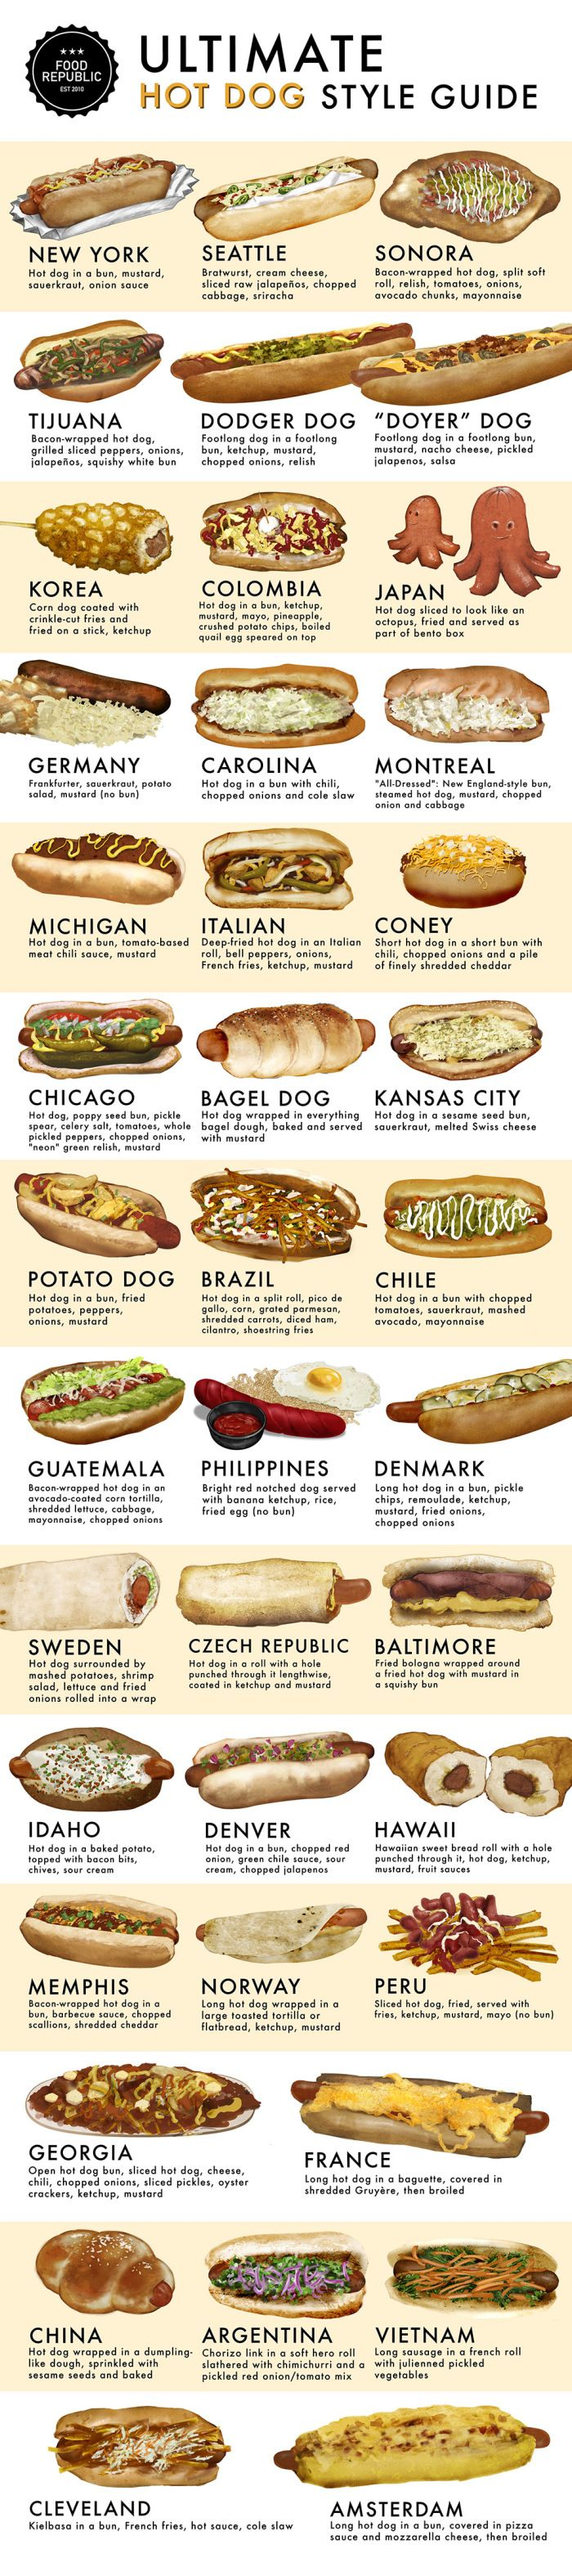 So... I've heard you like hot dogs - Imgur